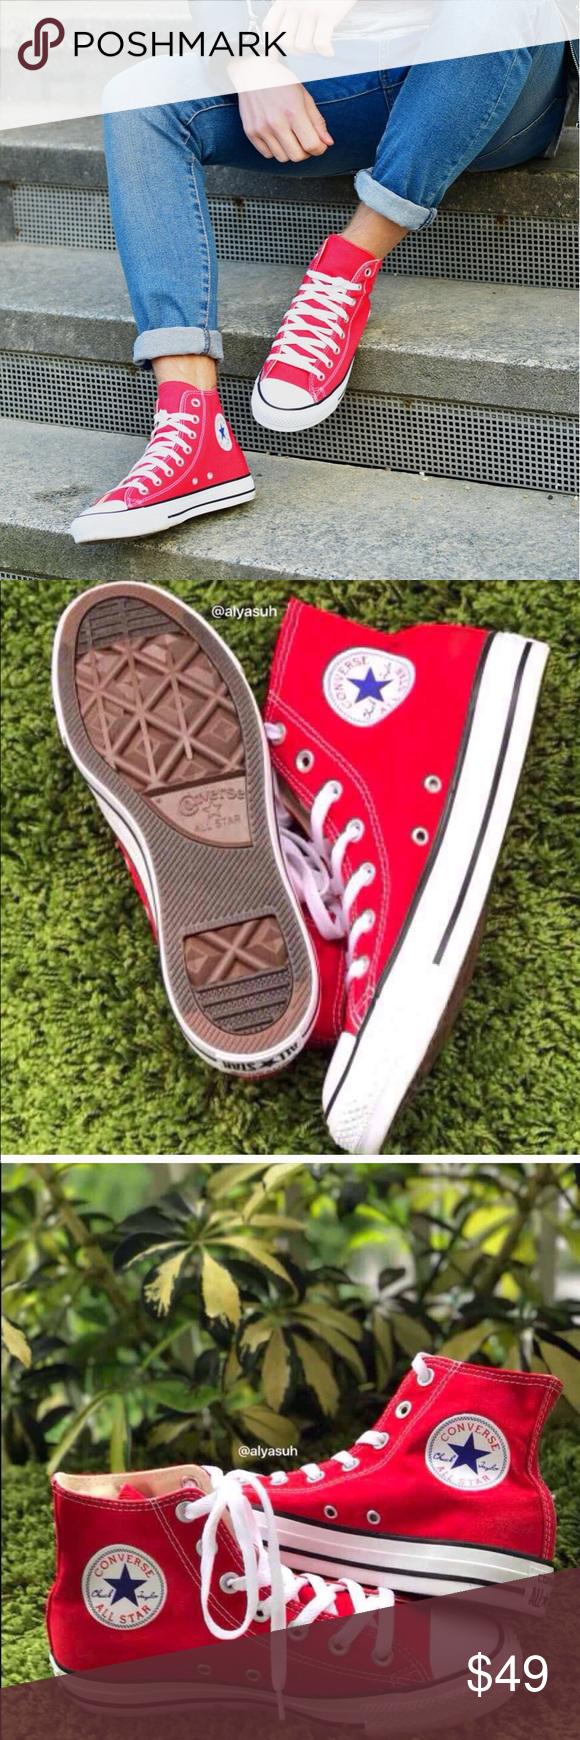 NWT Converse AdFabric AllStar Red HT M AUTHENTIC Brand new